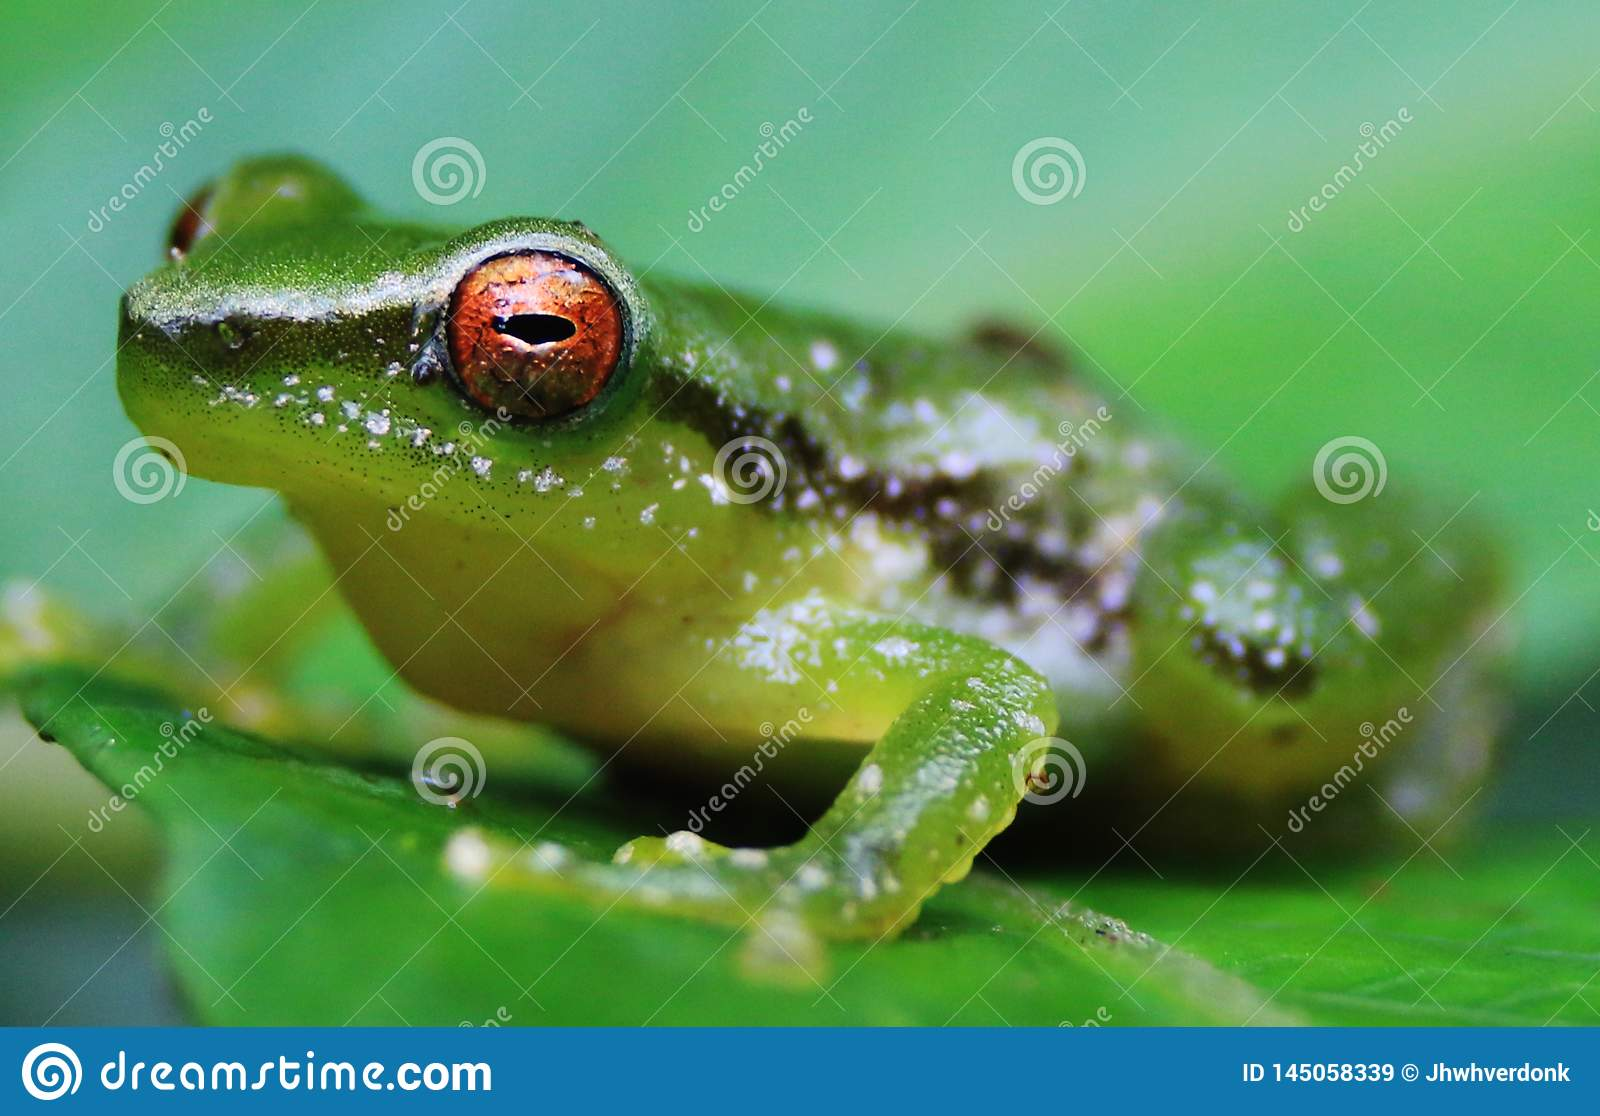 Close up of a green frog with a bright orange eye